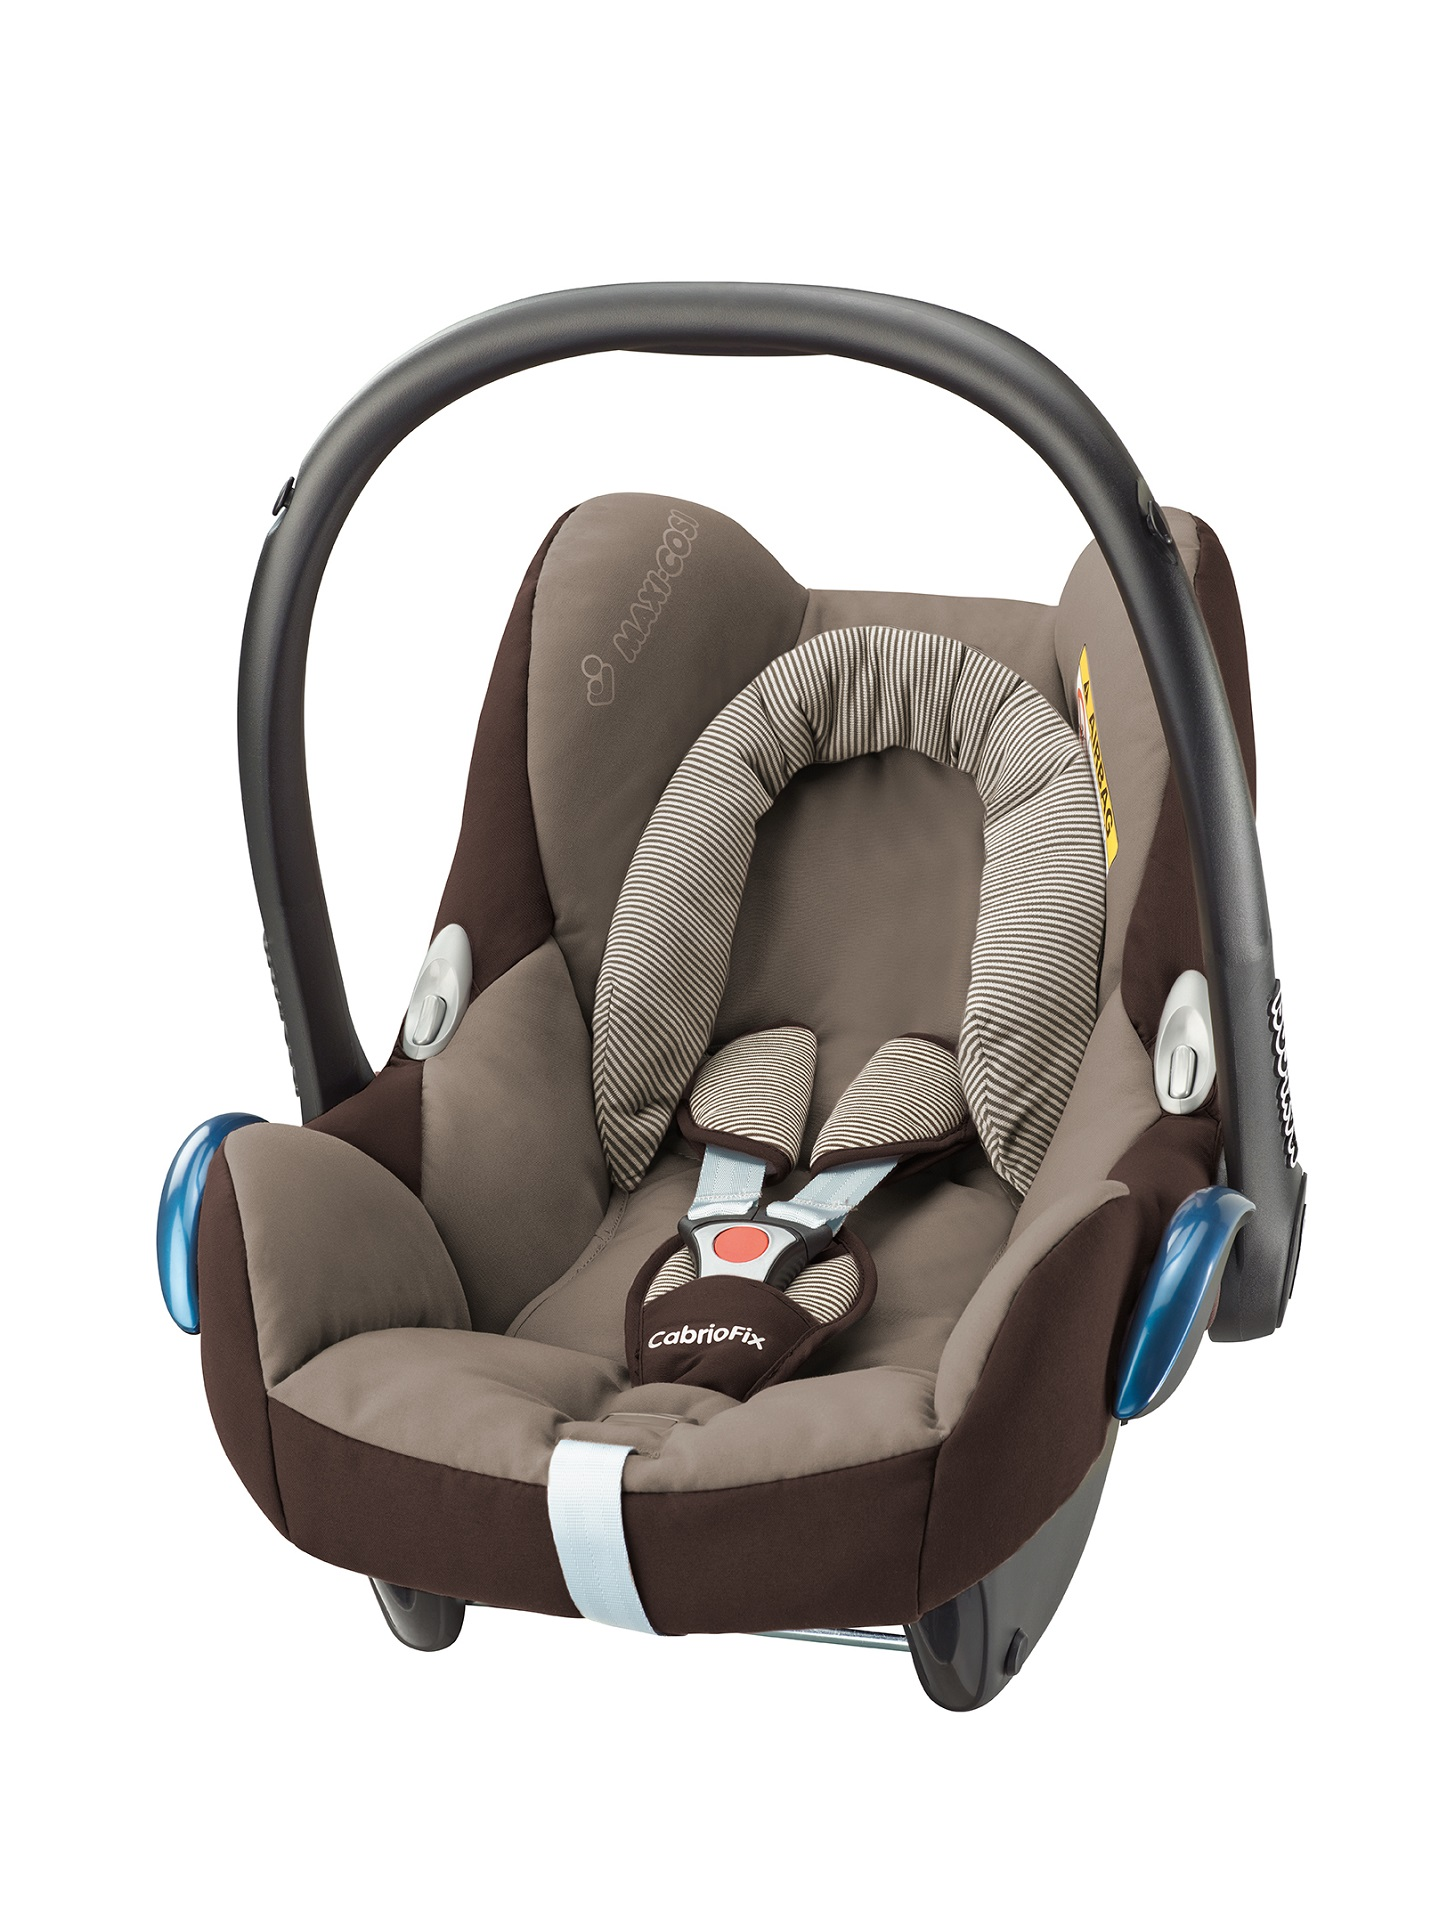 Maxi cosi infant carrier cabriofix buy at kidsroom de for Maxi cosi housse